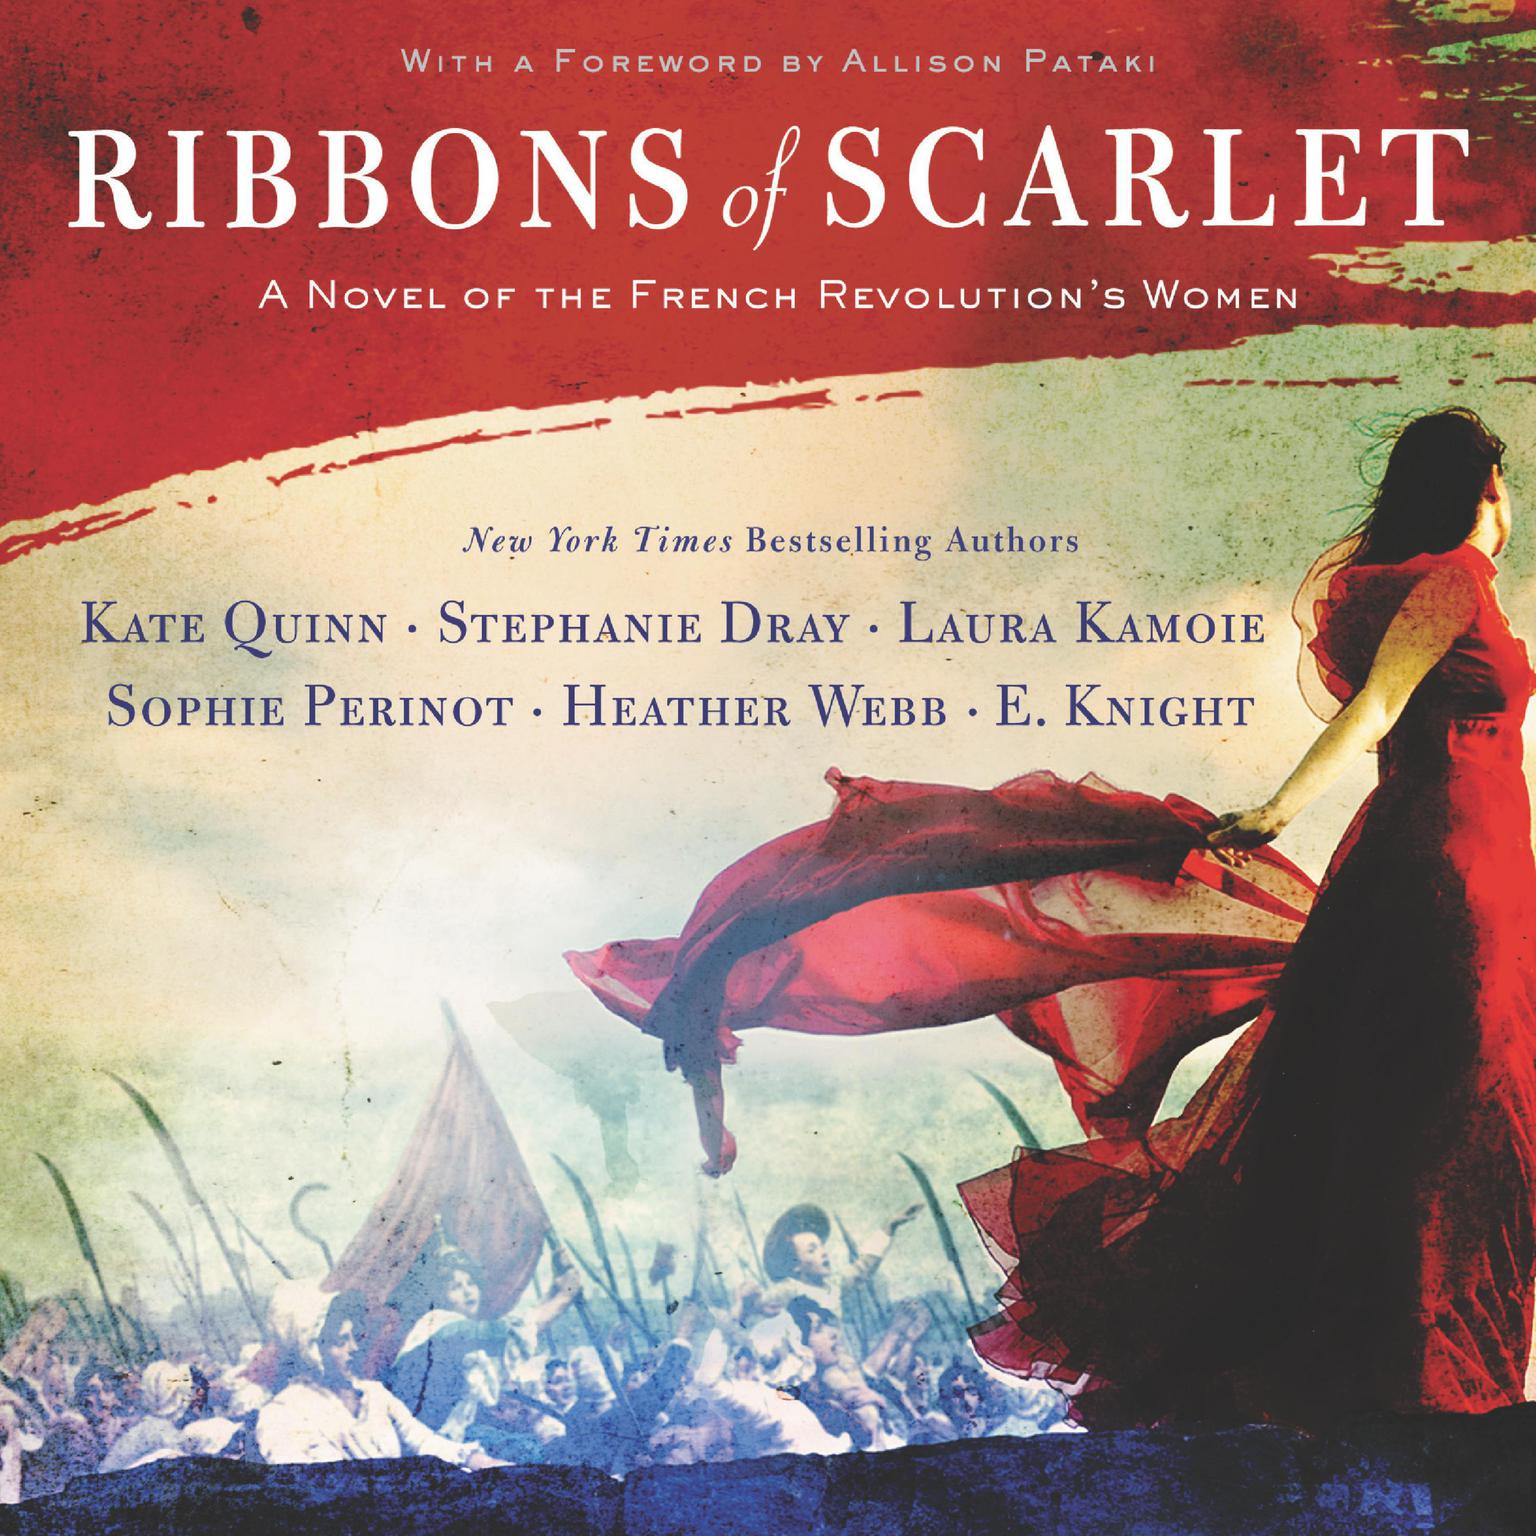 Ribbons of Scarlet: A Novel of the French Revolutions Women Audiobook, by Kate Quinn